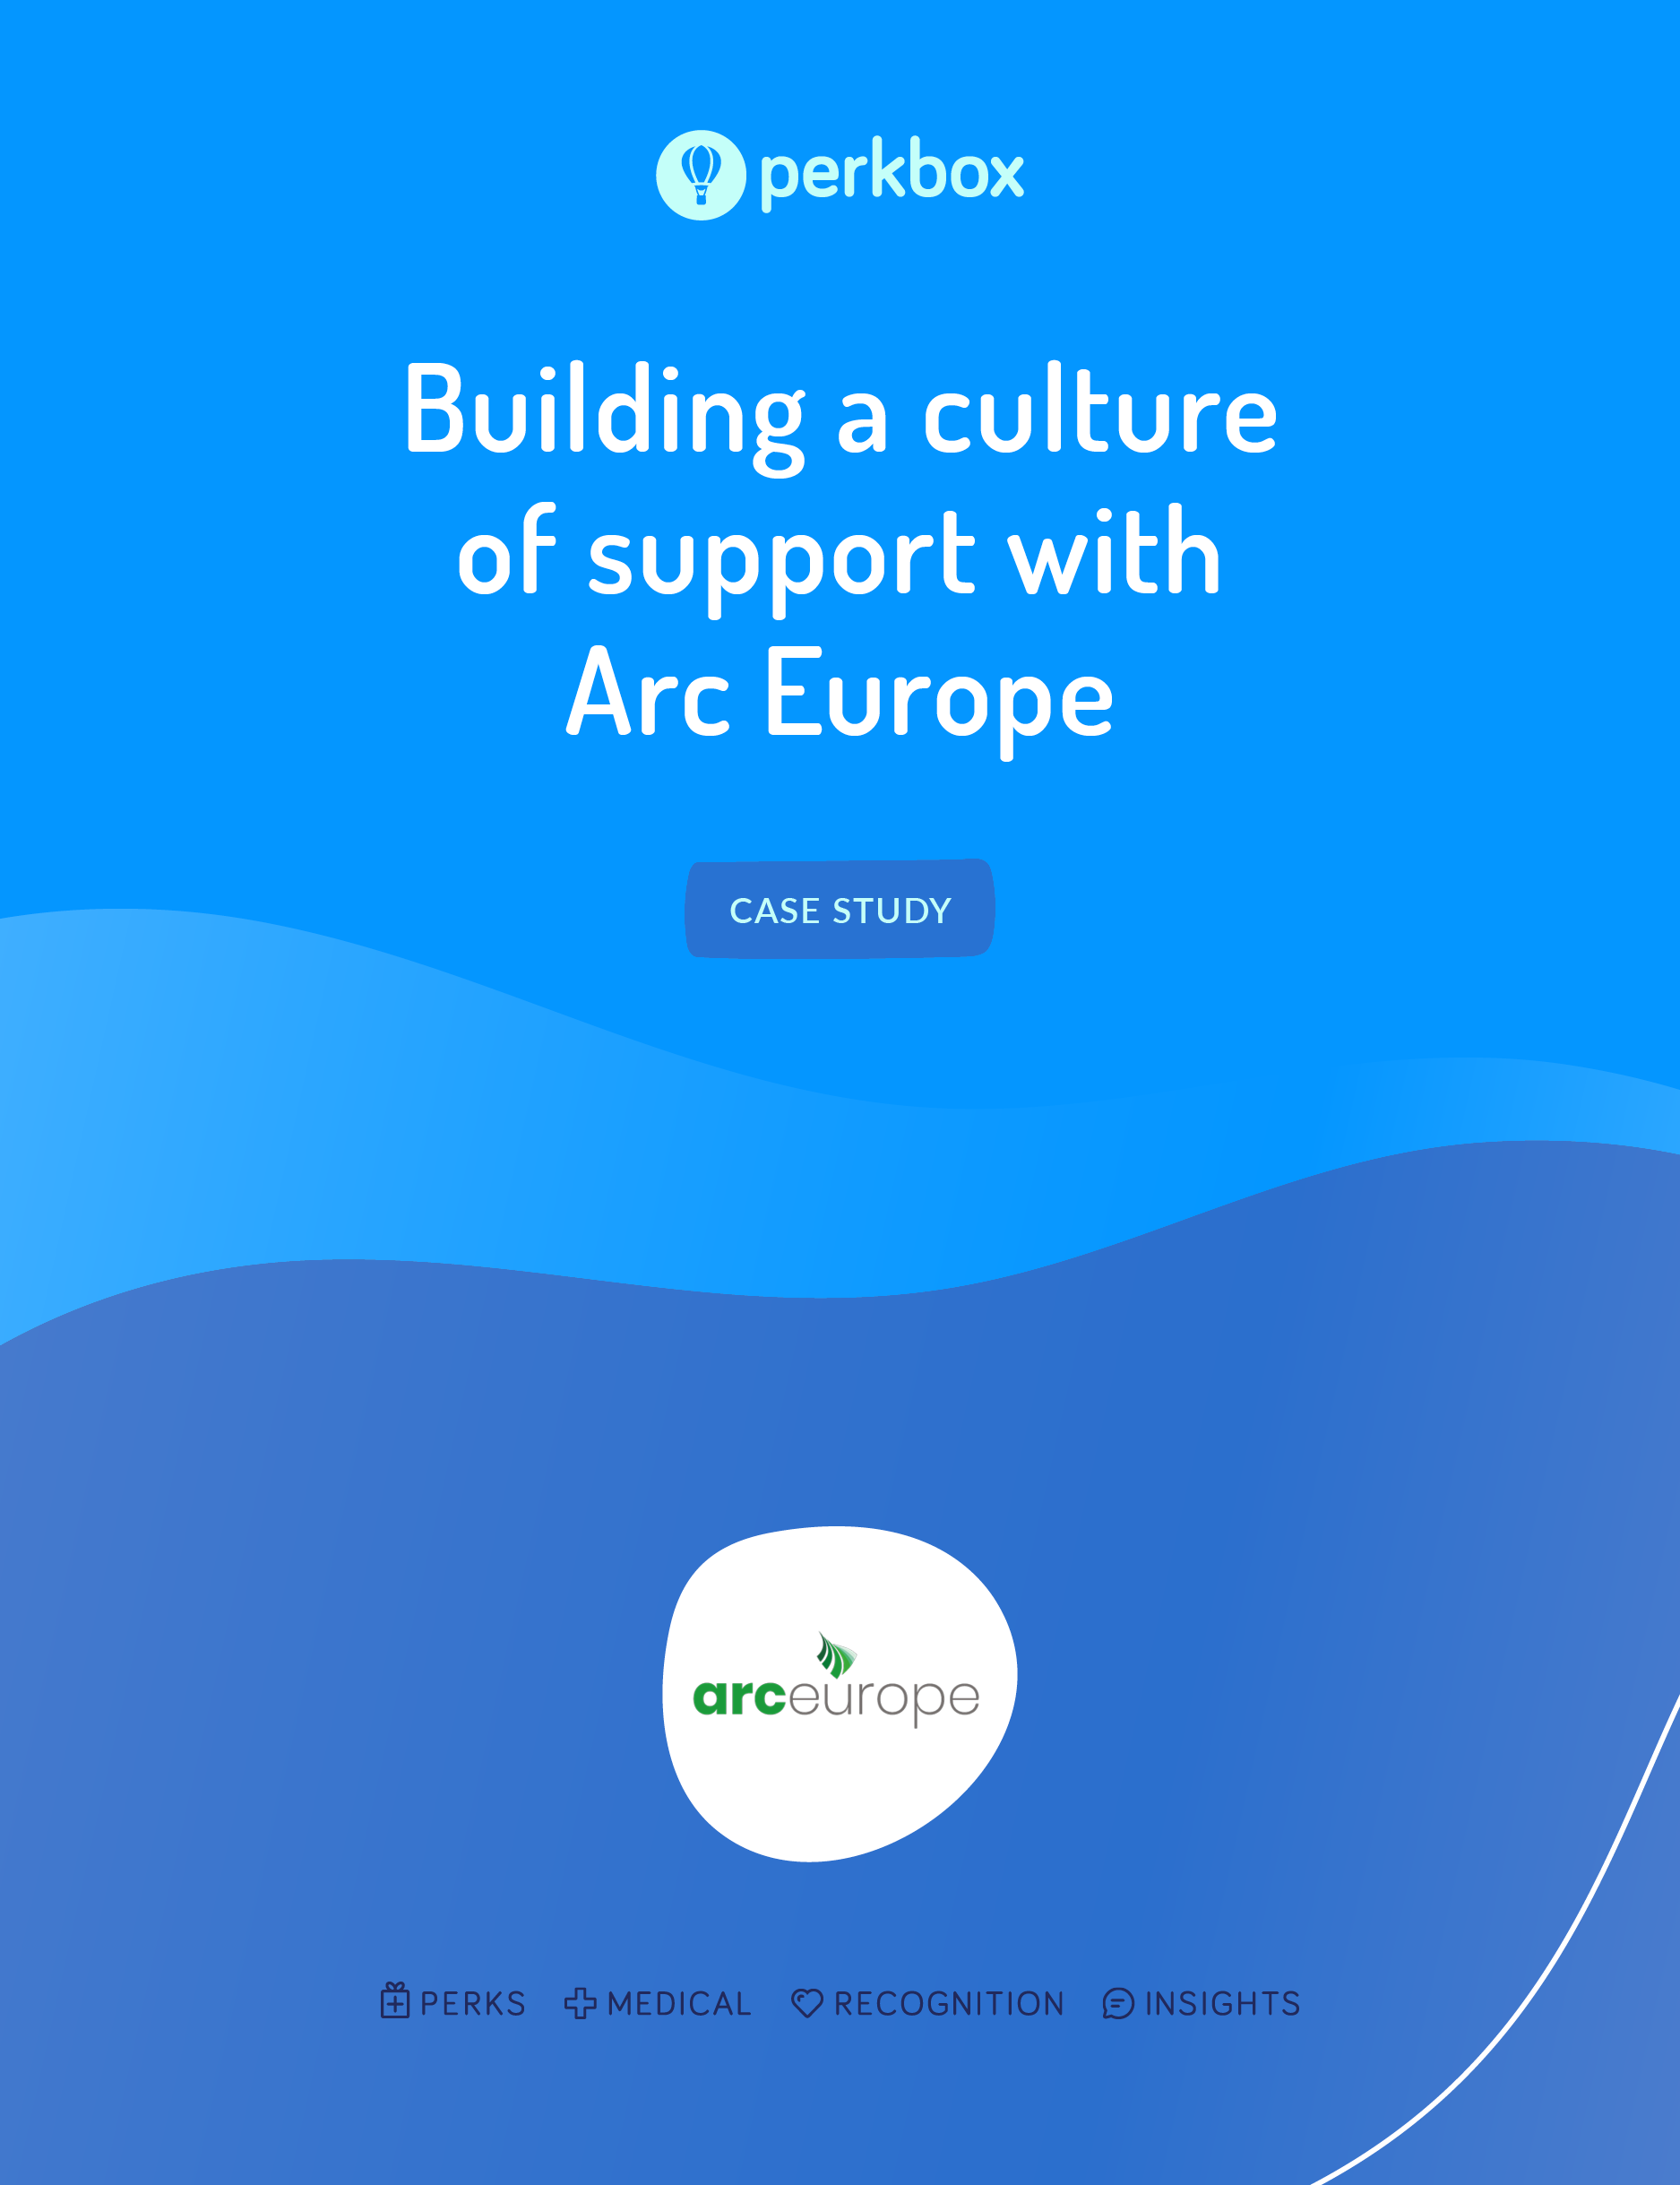 Building a culture of support with Arc Europe